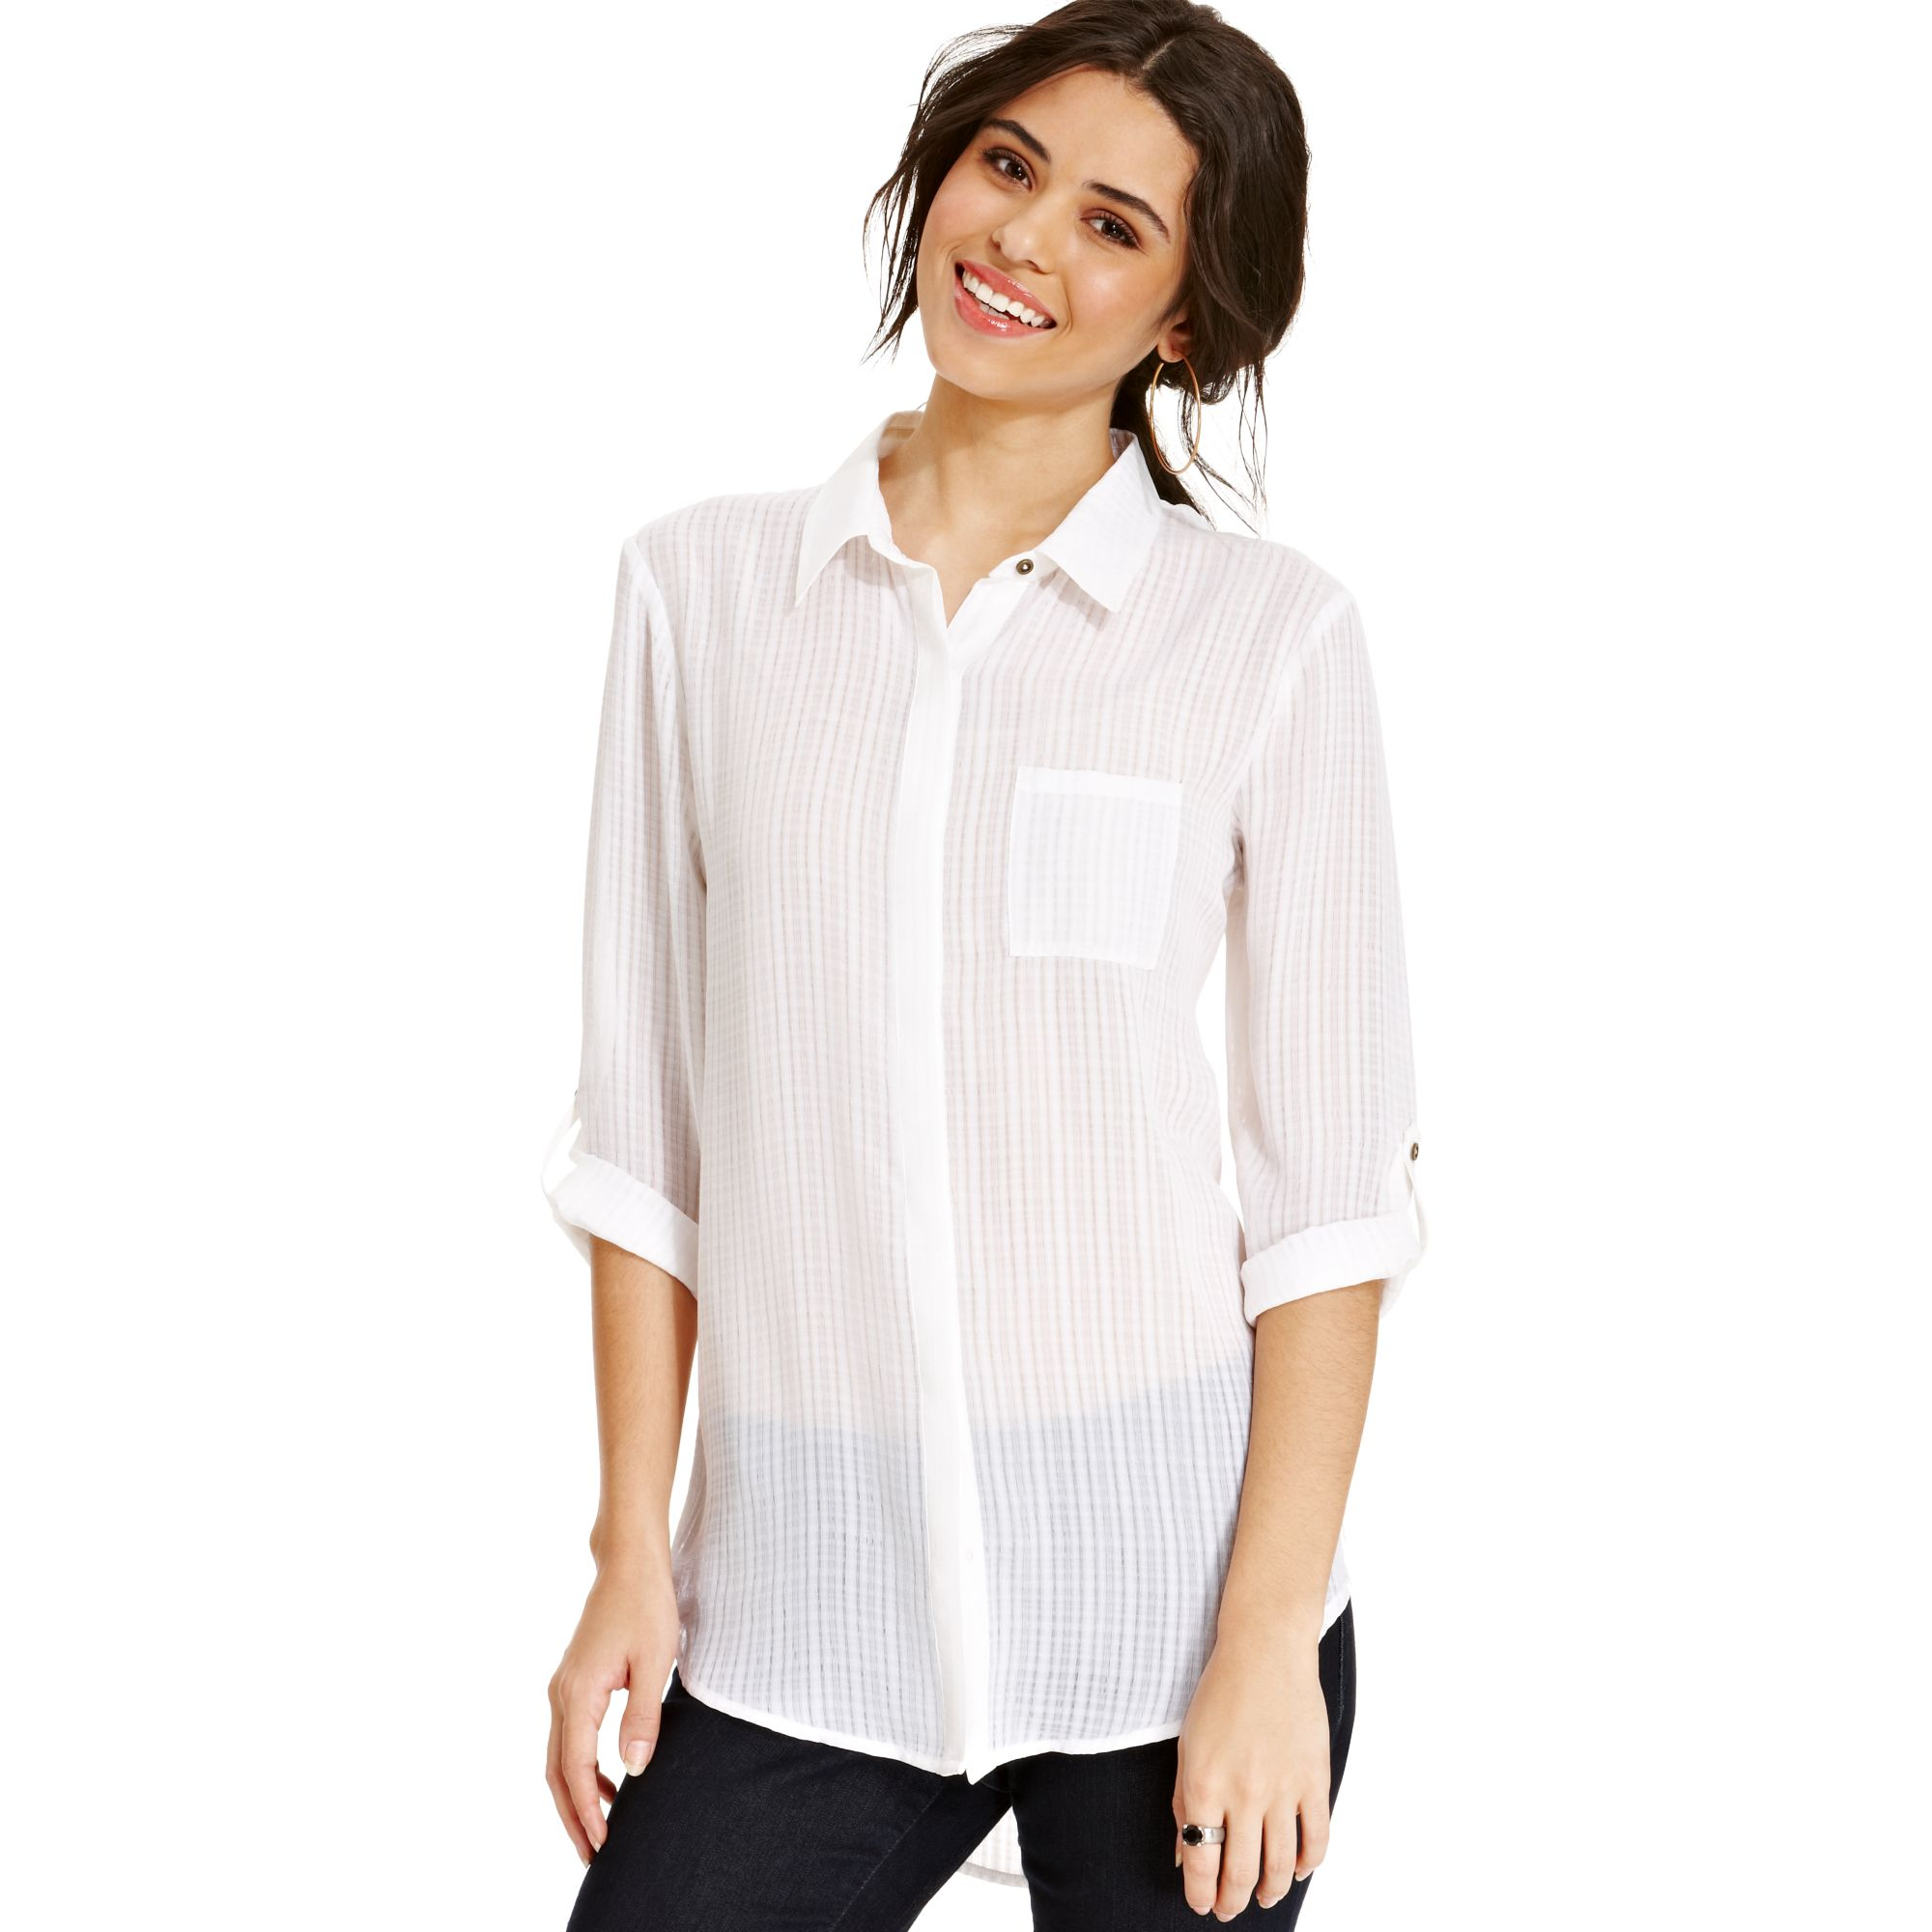 Lyst - Keds Juniors Sheer Plaid Button down Shirt in White